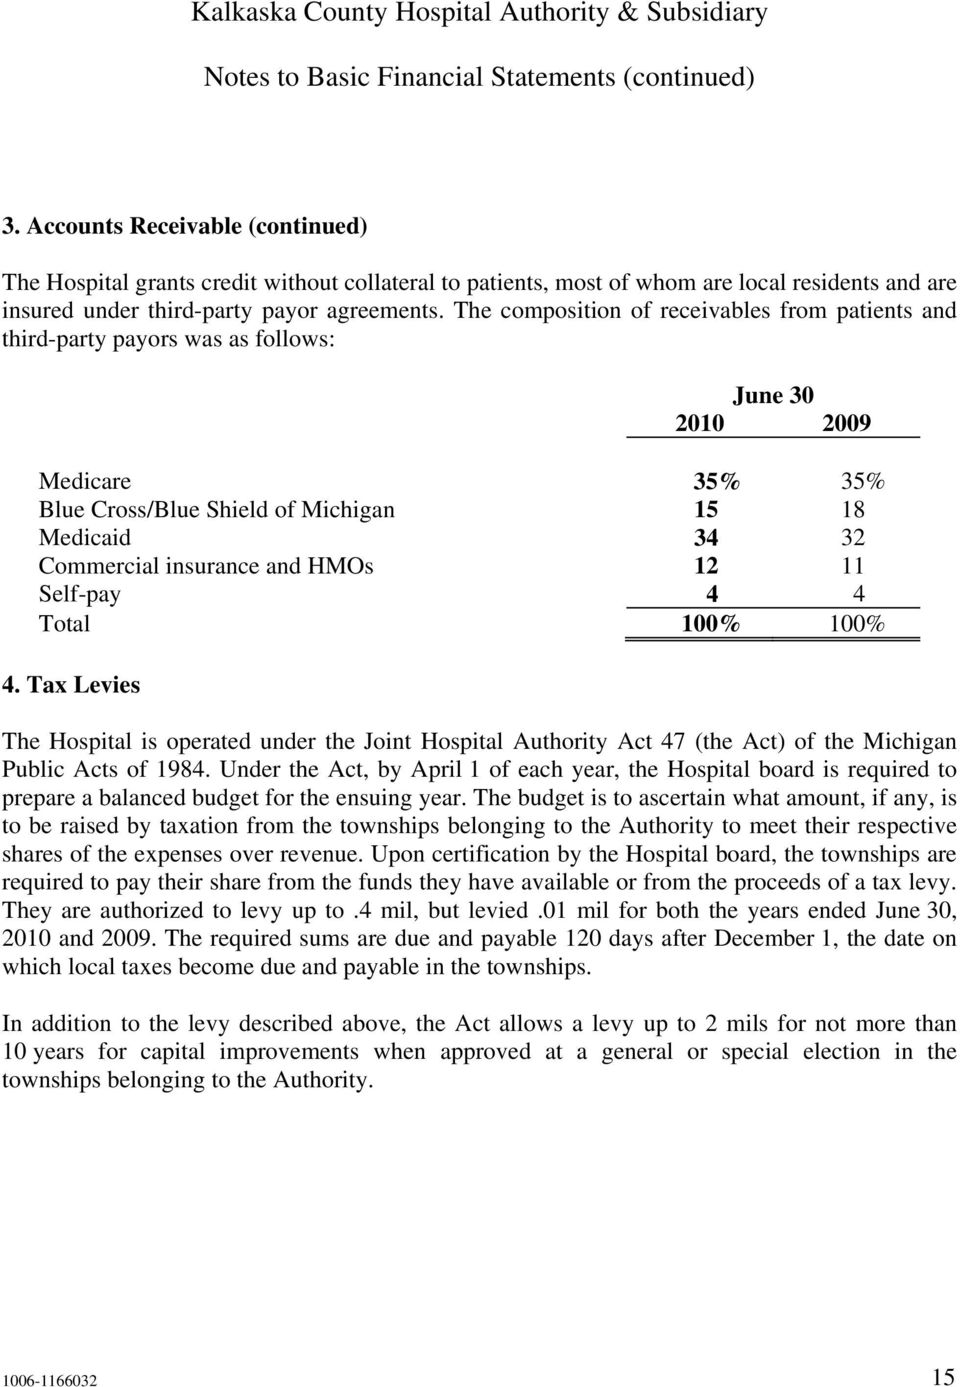 The composition of receivables from patients and third-party payors was as follows: June 30 2010 2009 Medicare 35% 35% Blue Cross/Blue Shield of Michigan 15 18 Medicaid 34 32 Commercial insurance and